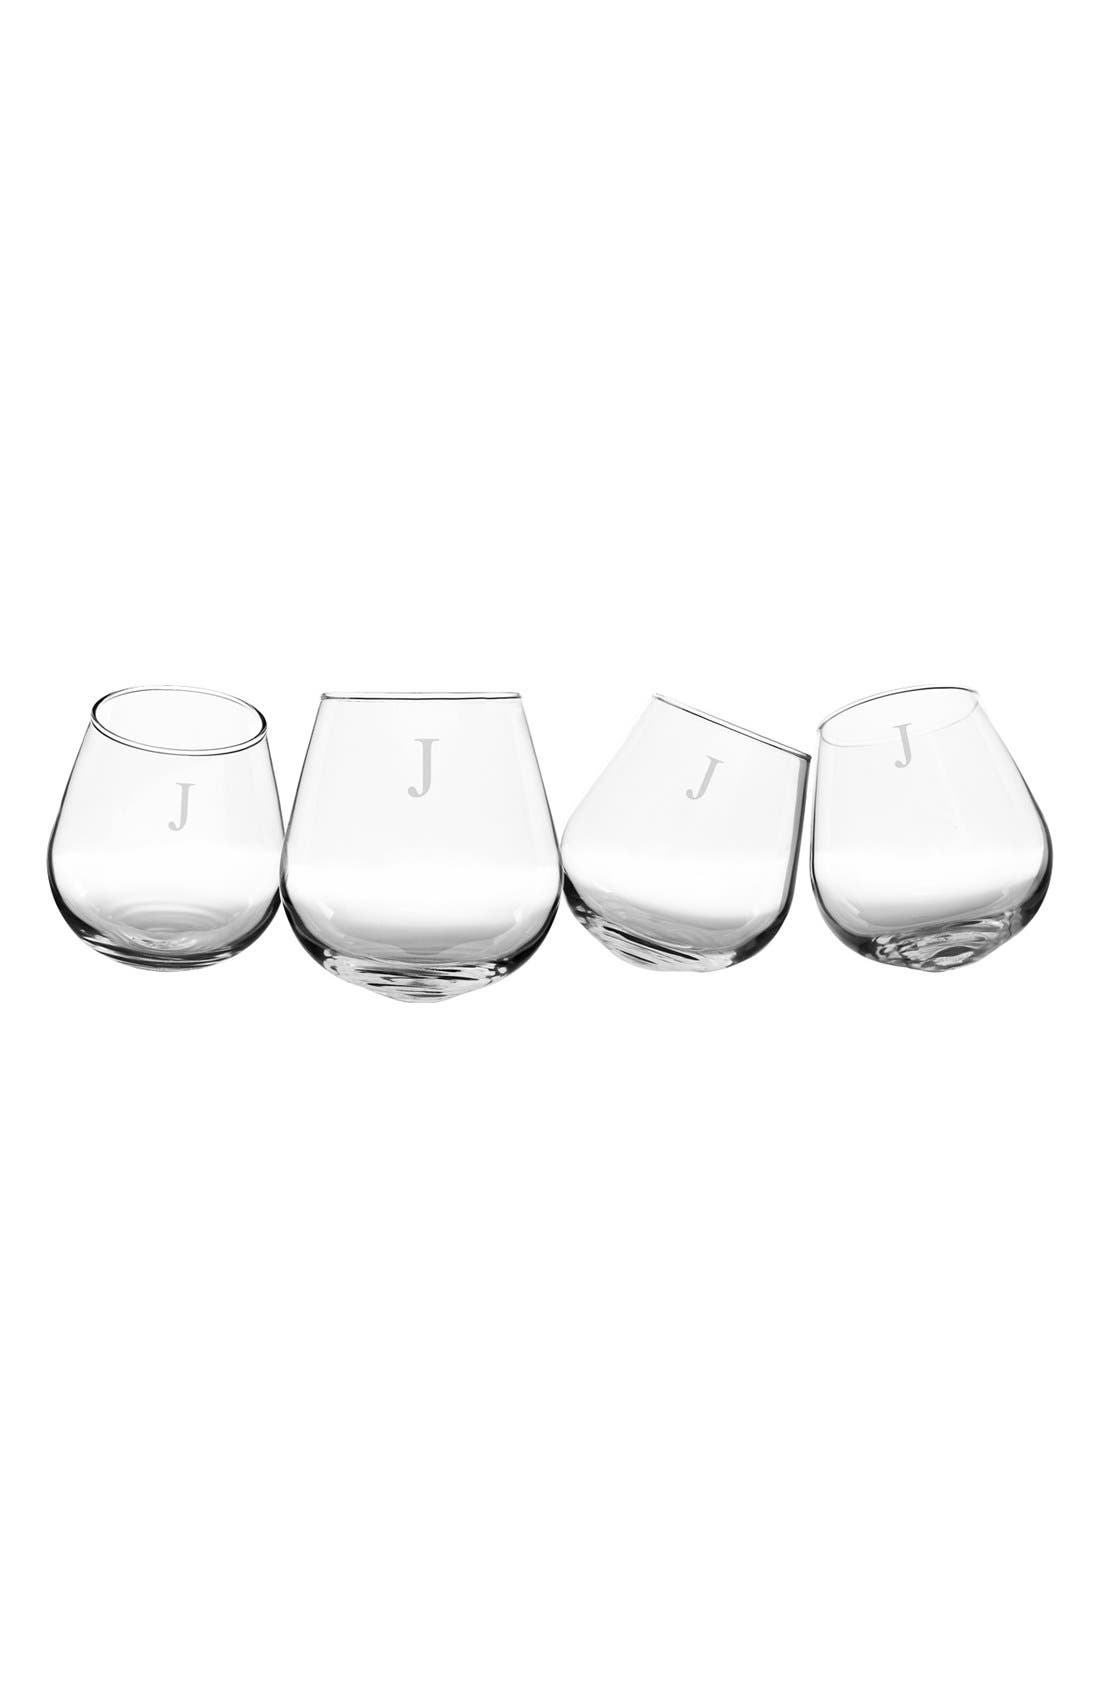 Main Image - Cathy's Concepts Monogram Tipsy Set of 4 Wine Glasses